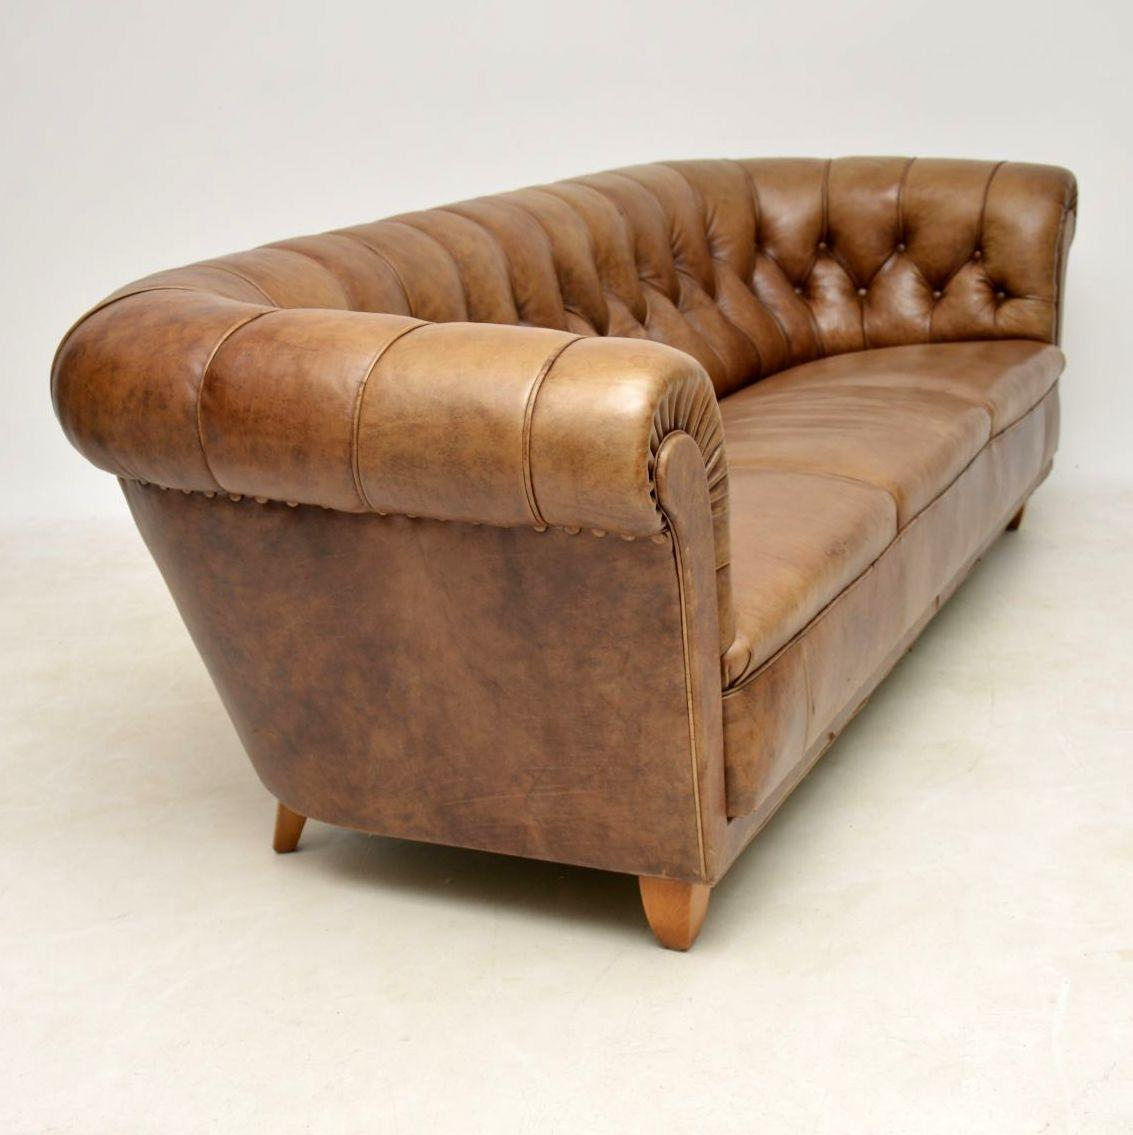 Antique Swedish Leather Chesterfield Sofa At 1stdibs